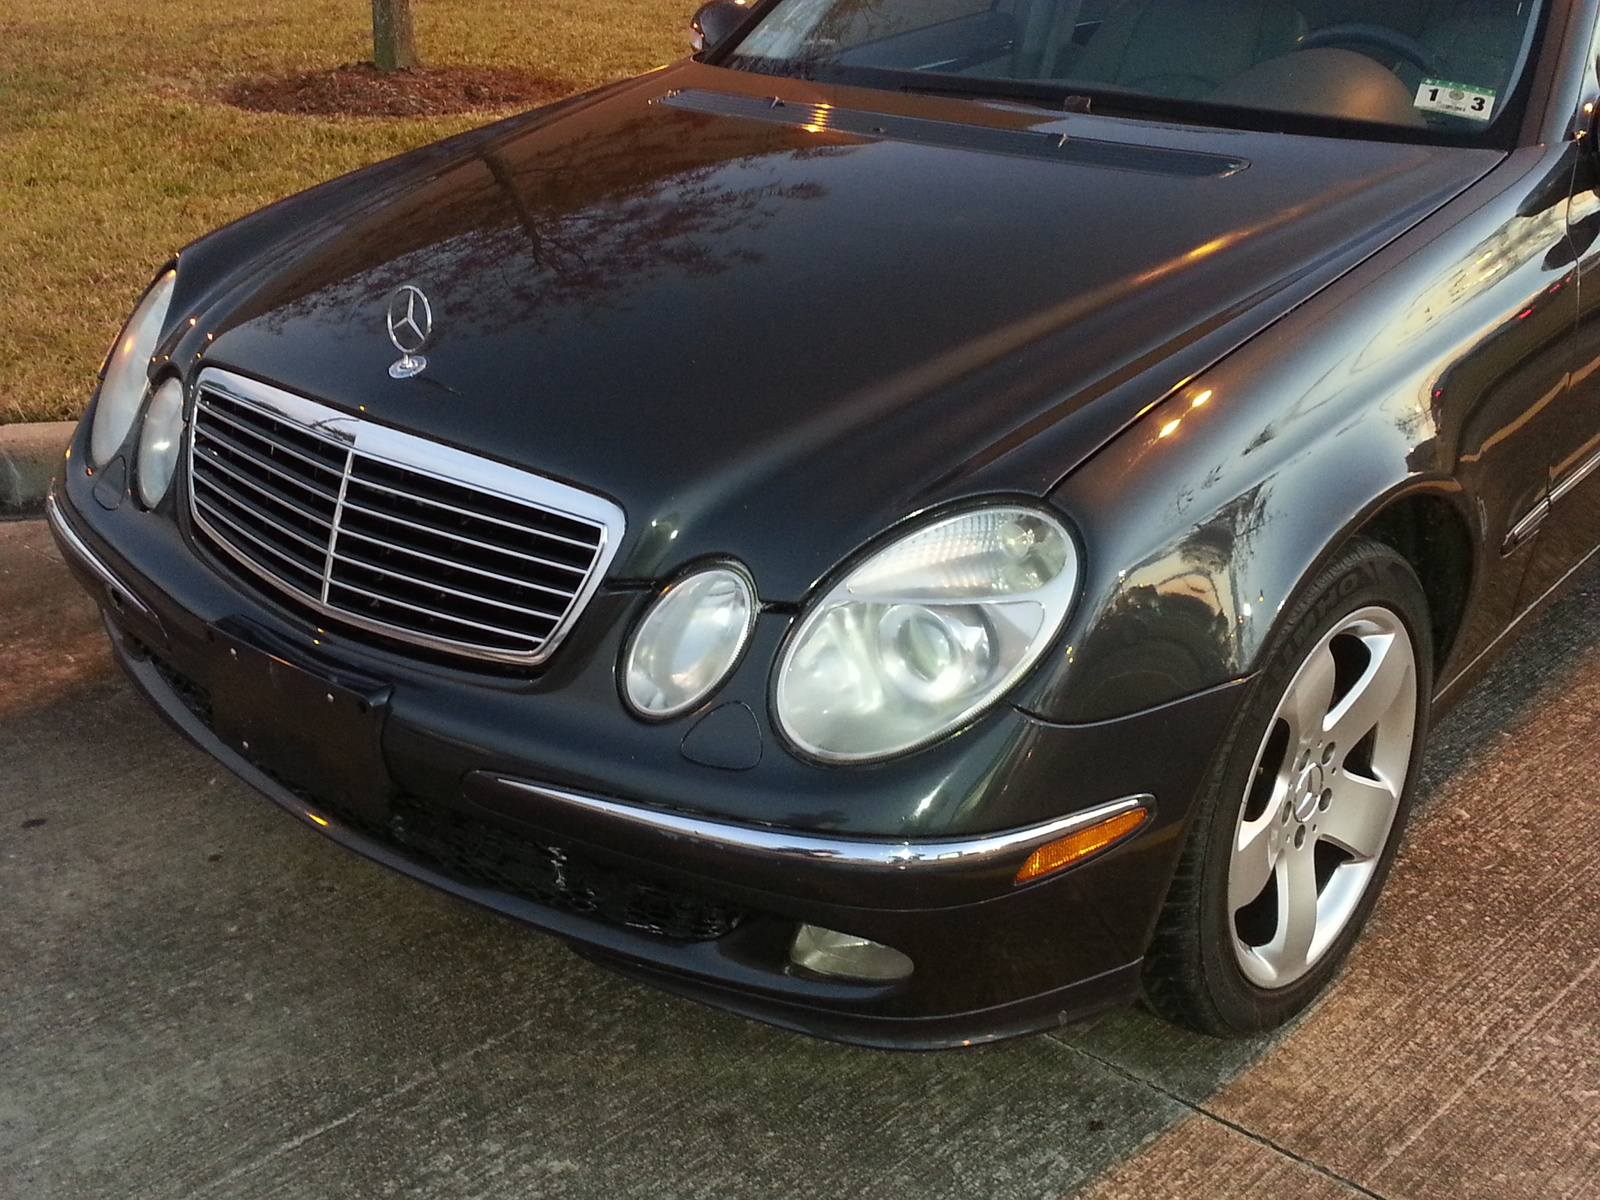 2004 mercedes benz e class pictures cargurus for 2008 mercedes benz ml350 problems